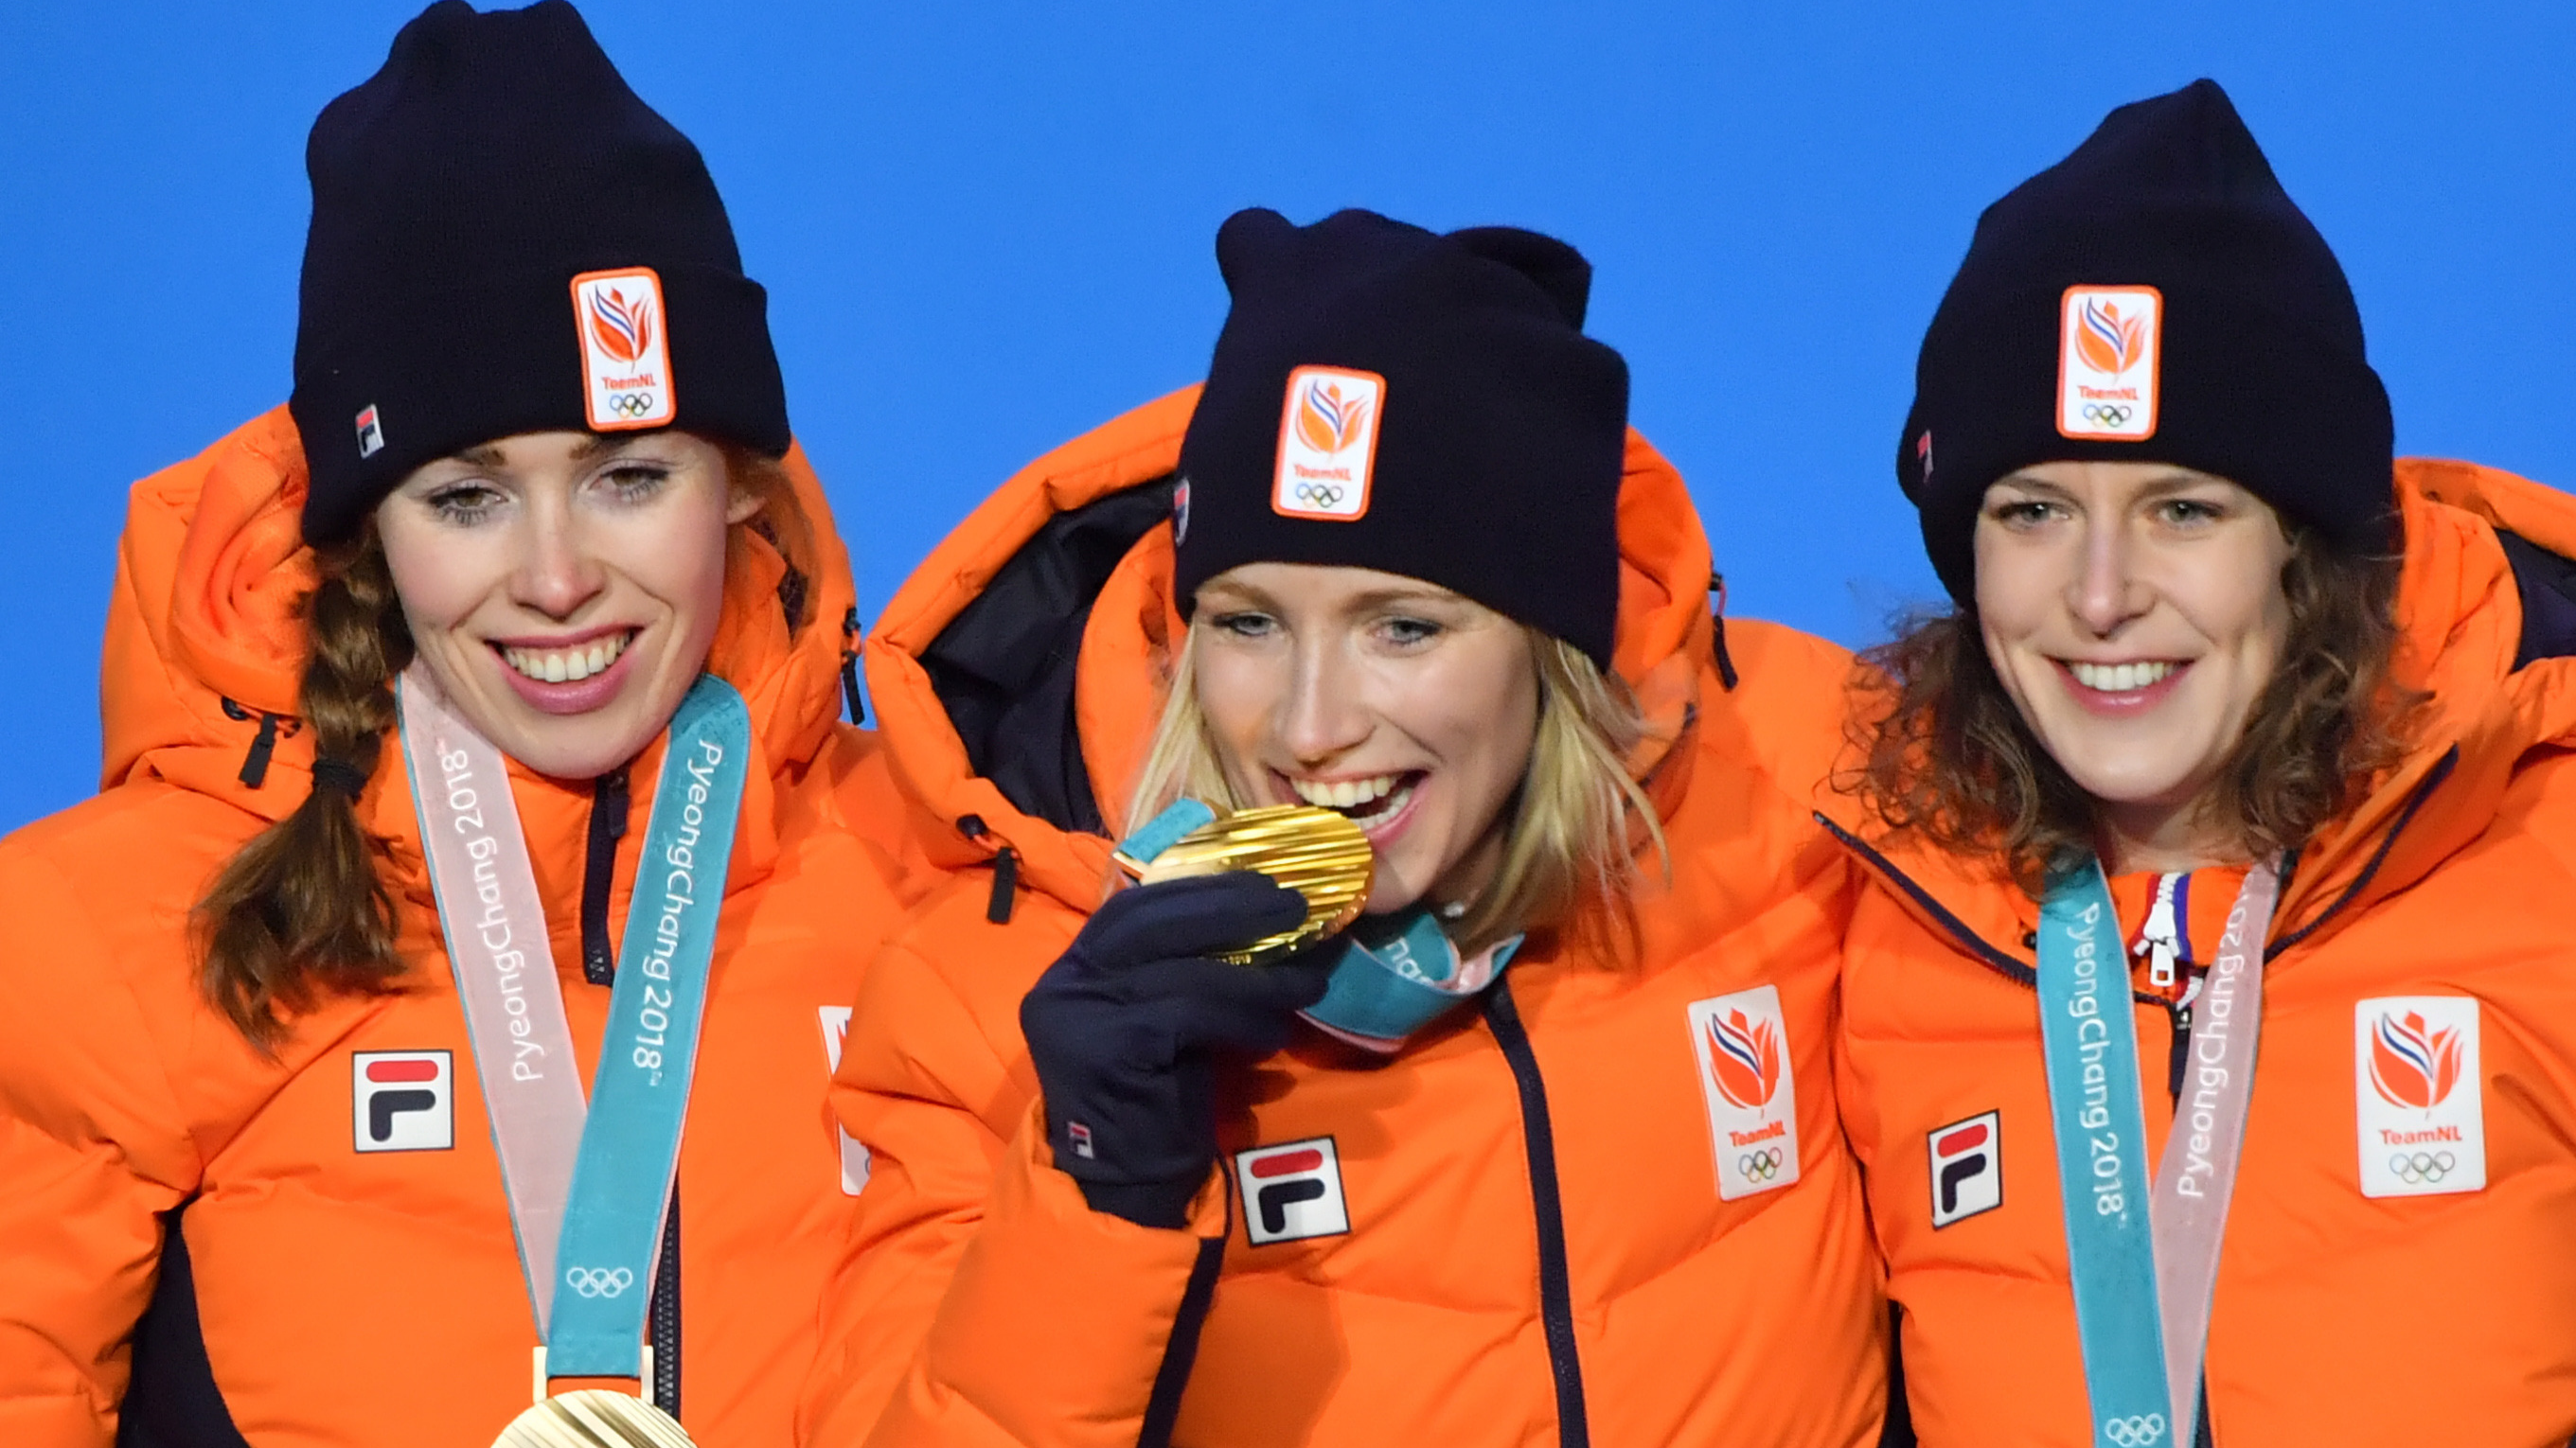 Dutch People Trolled Donald Trump At The Winter Olympics With Flag